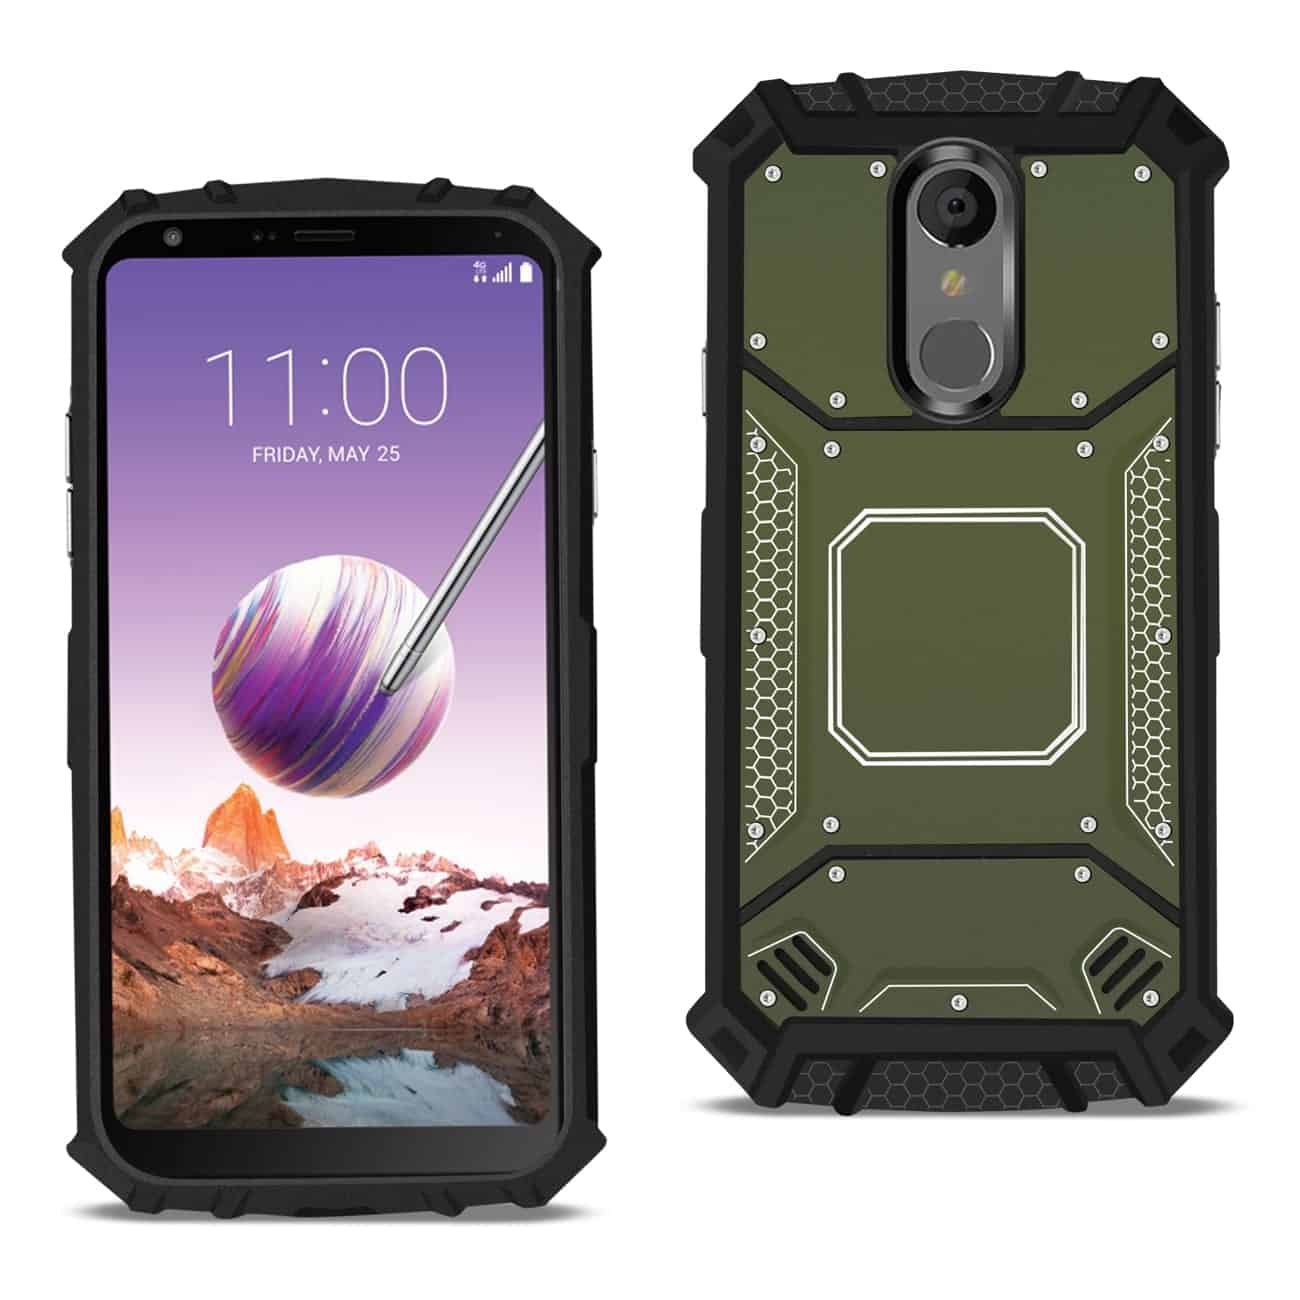 LG STYLO 4 Metallic Front Cover Case In Gray